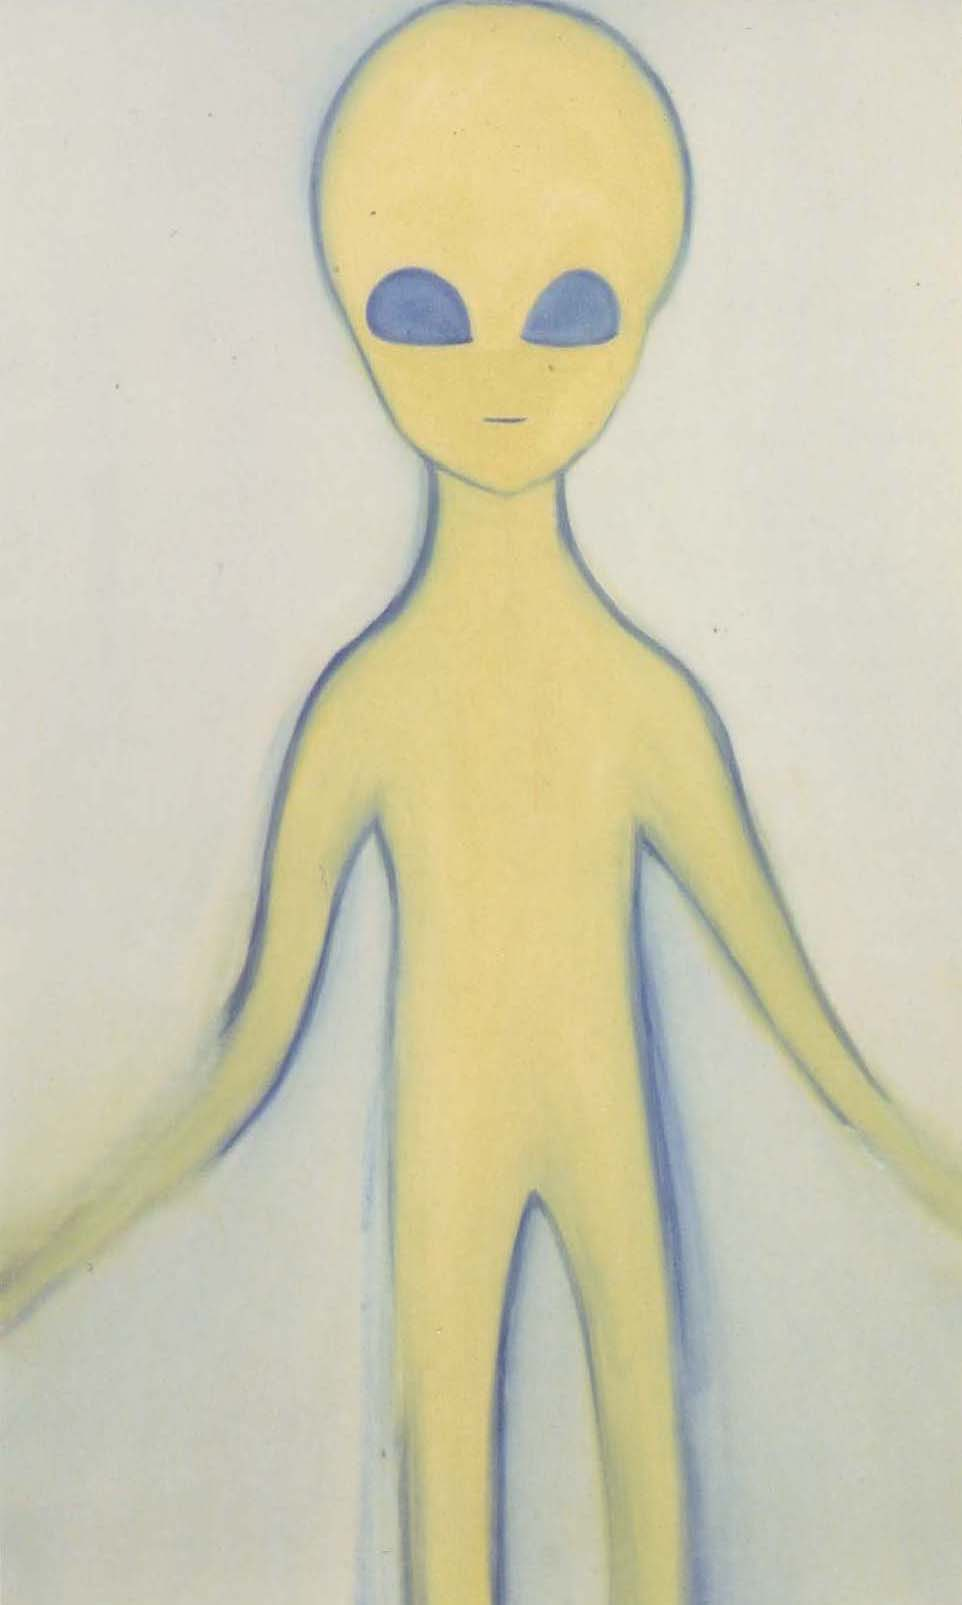 """Alien"", 2000, 198 x 118 cm, oil on canvas"